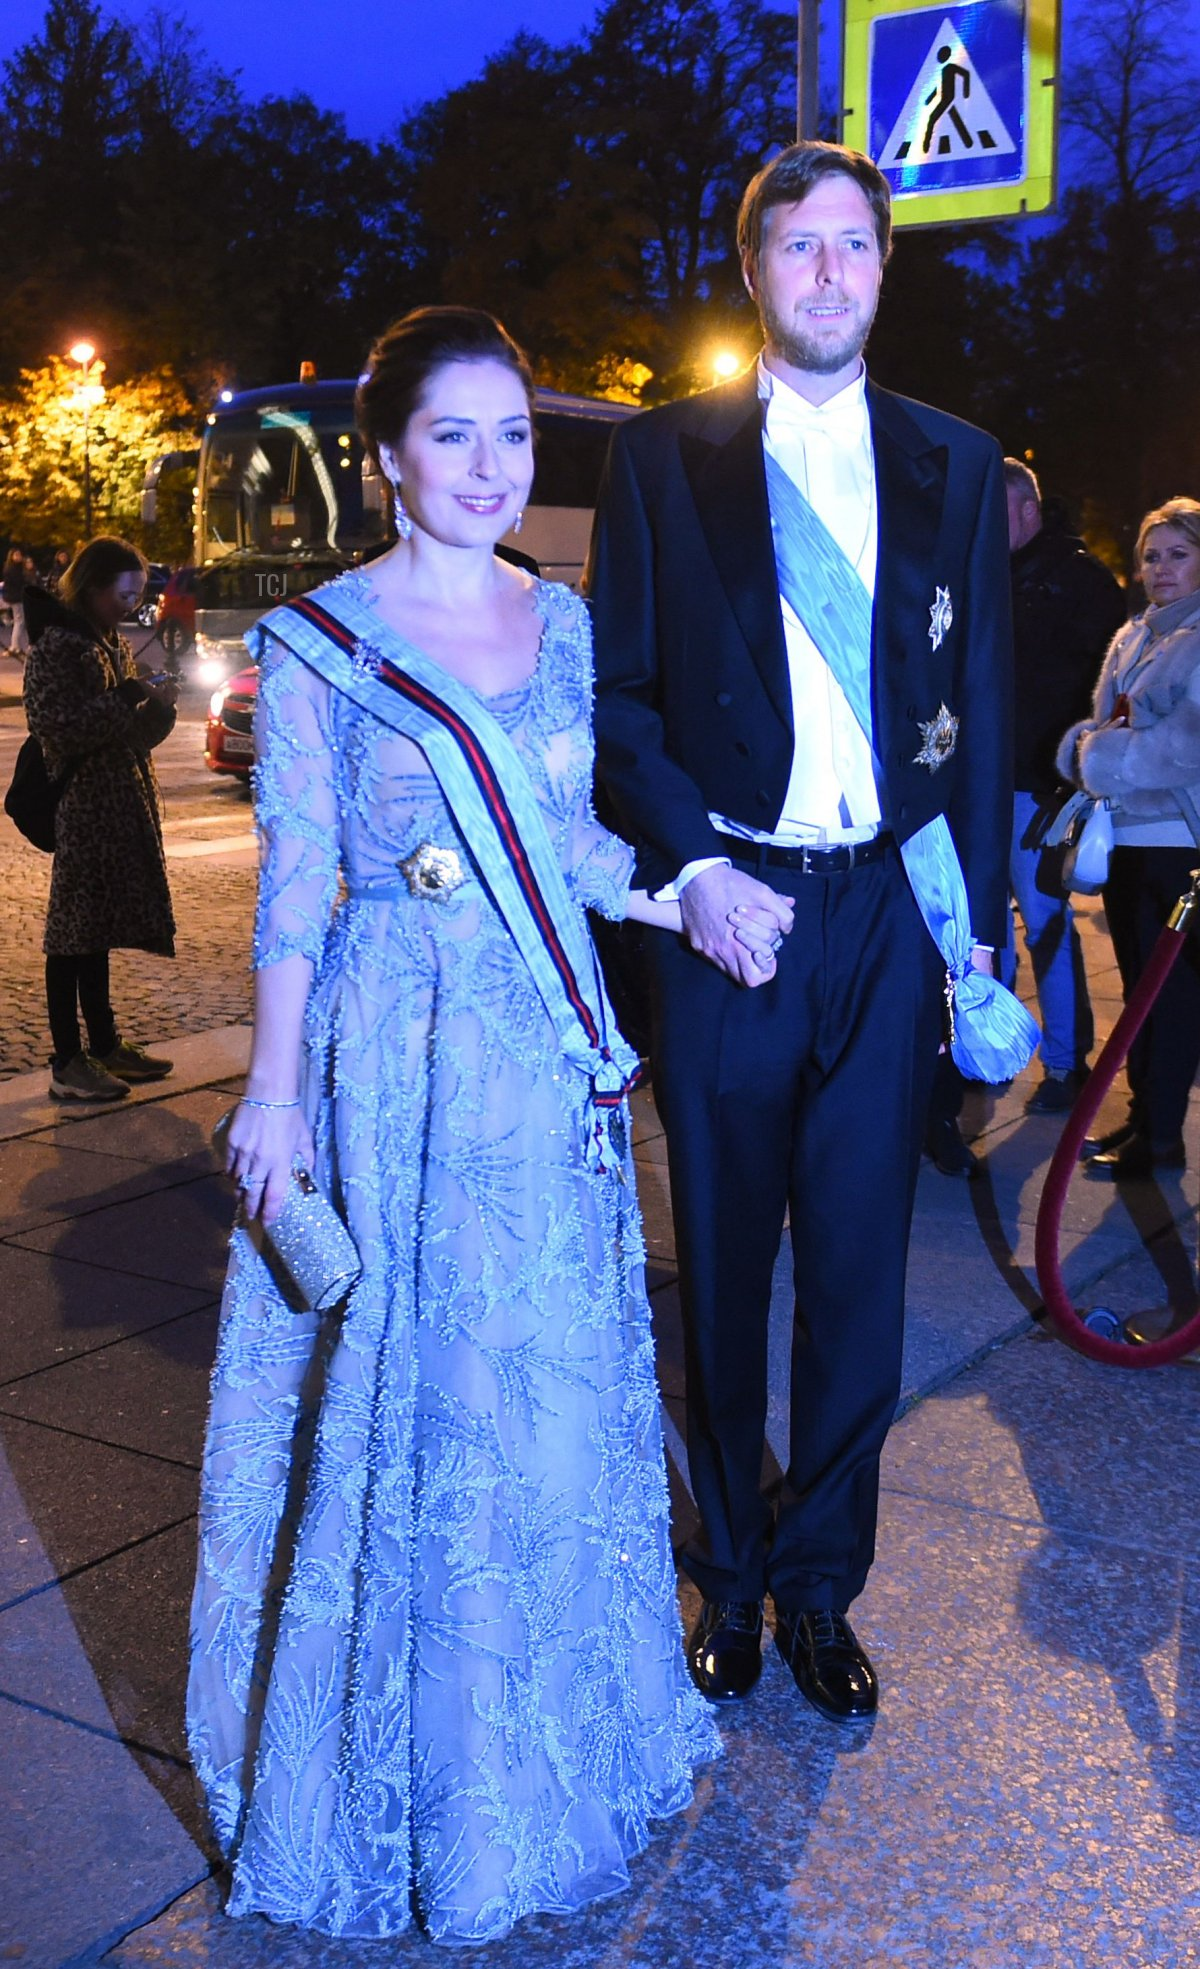 Albania's pretender to the throne, Crown Prince Leka Zogu II, the grandson of self-proclaimed King Zog and his wife Elia Zaharia arrive to attend a dinner during the wedding of Grand Duke George Mikhailovich Romanov, and Victoria Romanovna Bettarini in Saint Petersburg, on October 1, 2021